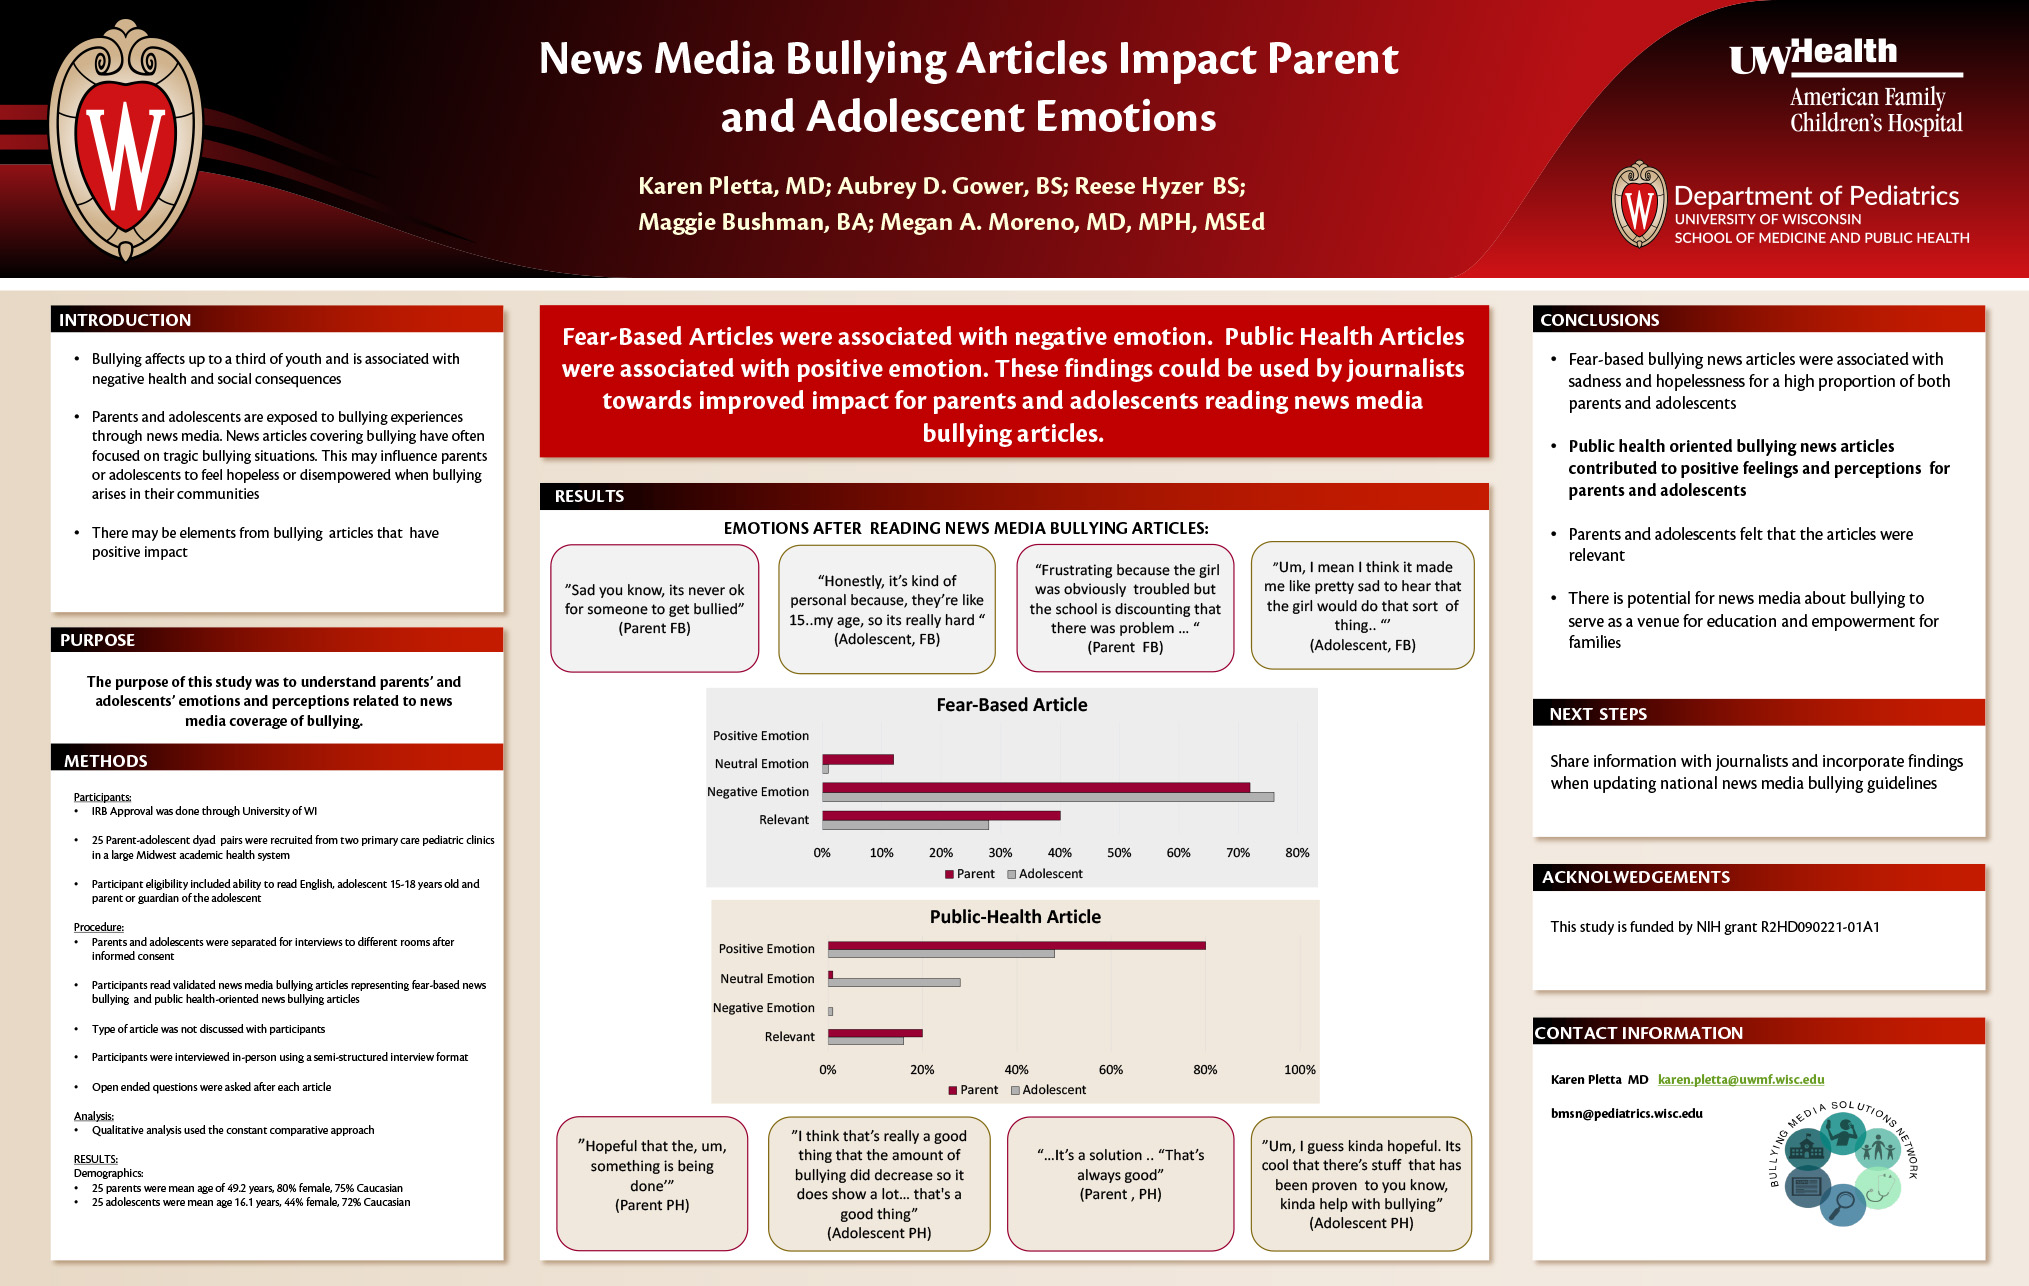 News Media Bullying Articles Impact Parent and Adolescent Emotions poster image